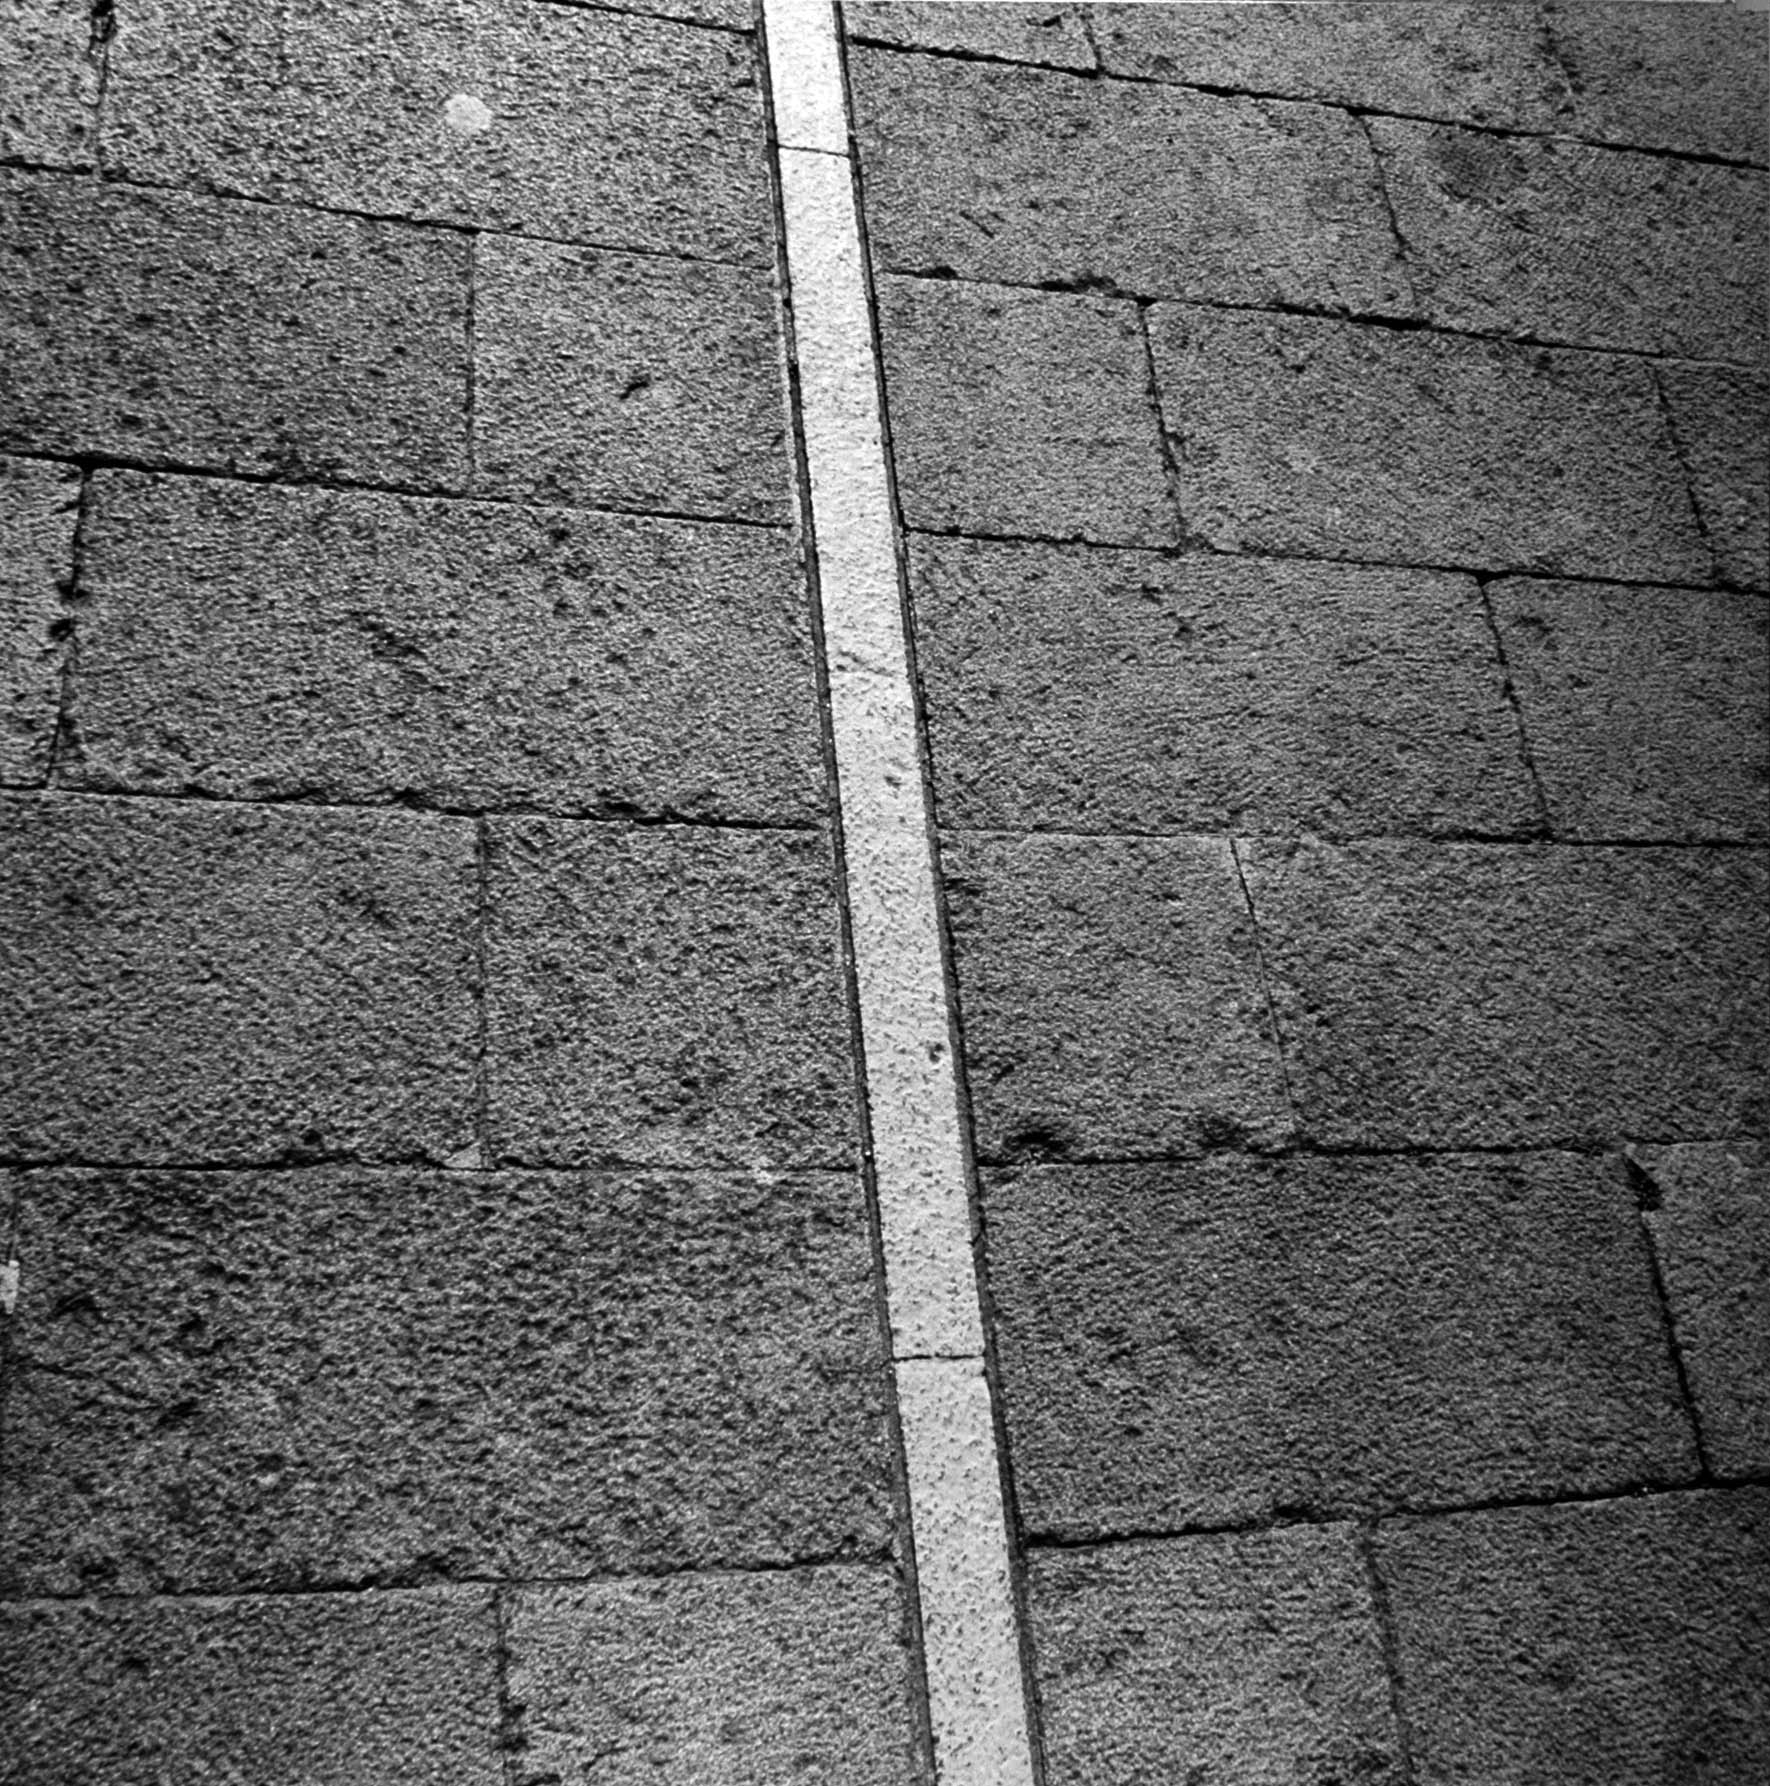 Improbable Boundaries (Equator at Mitad del Mundo) 36-02